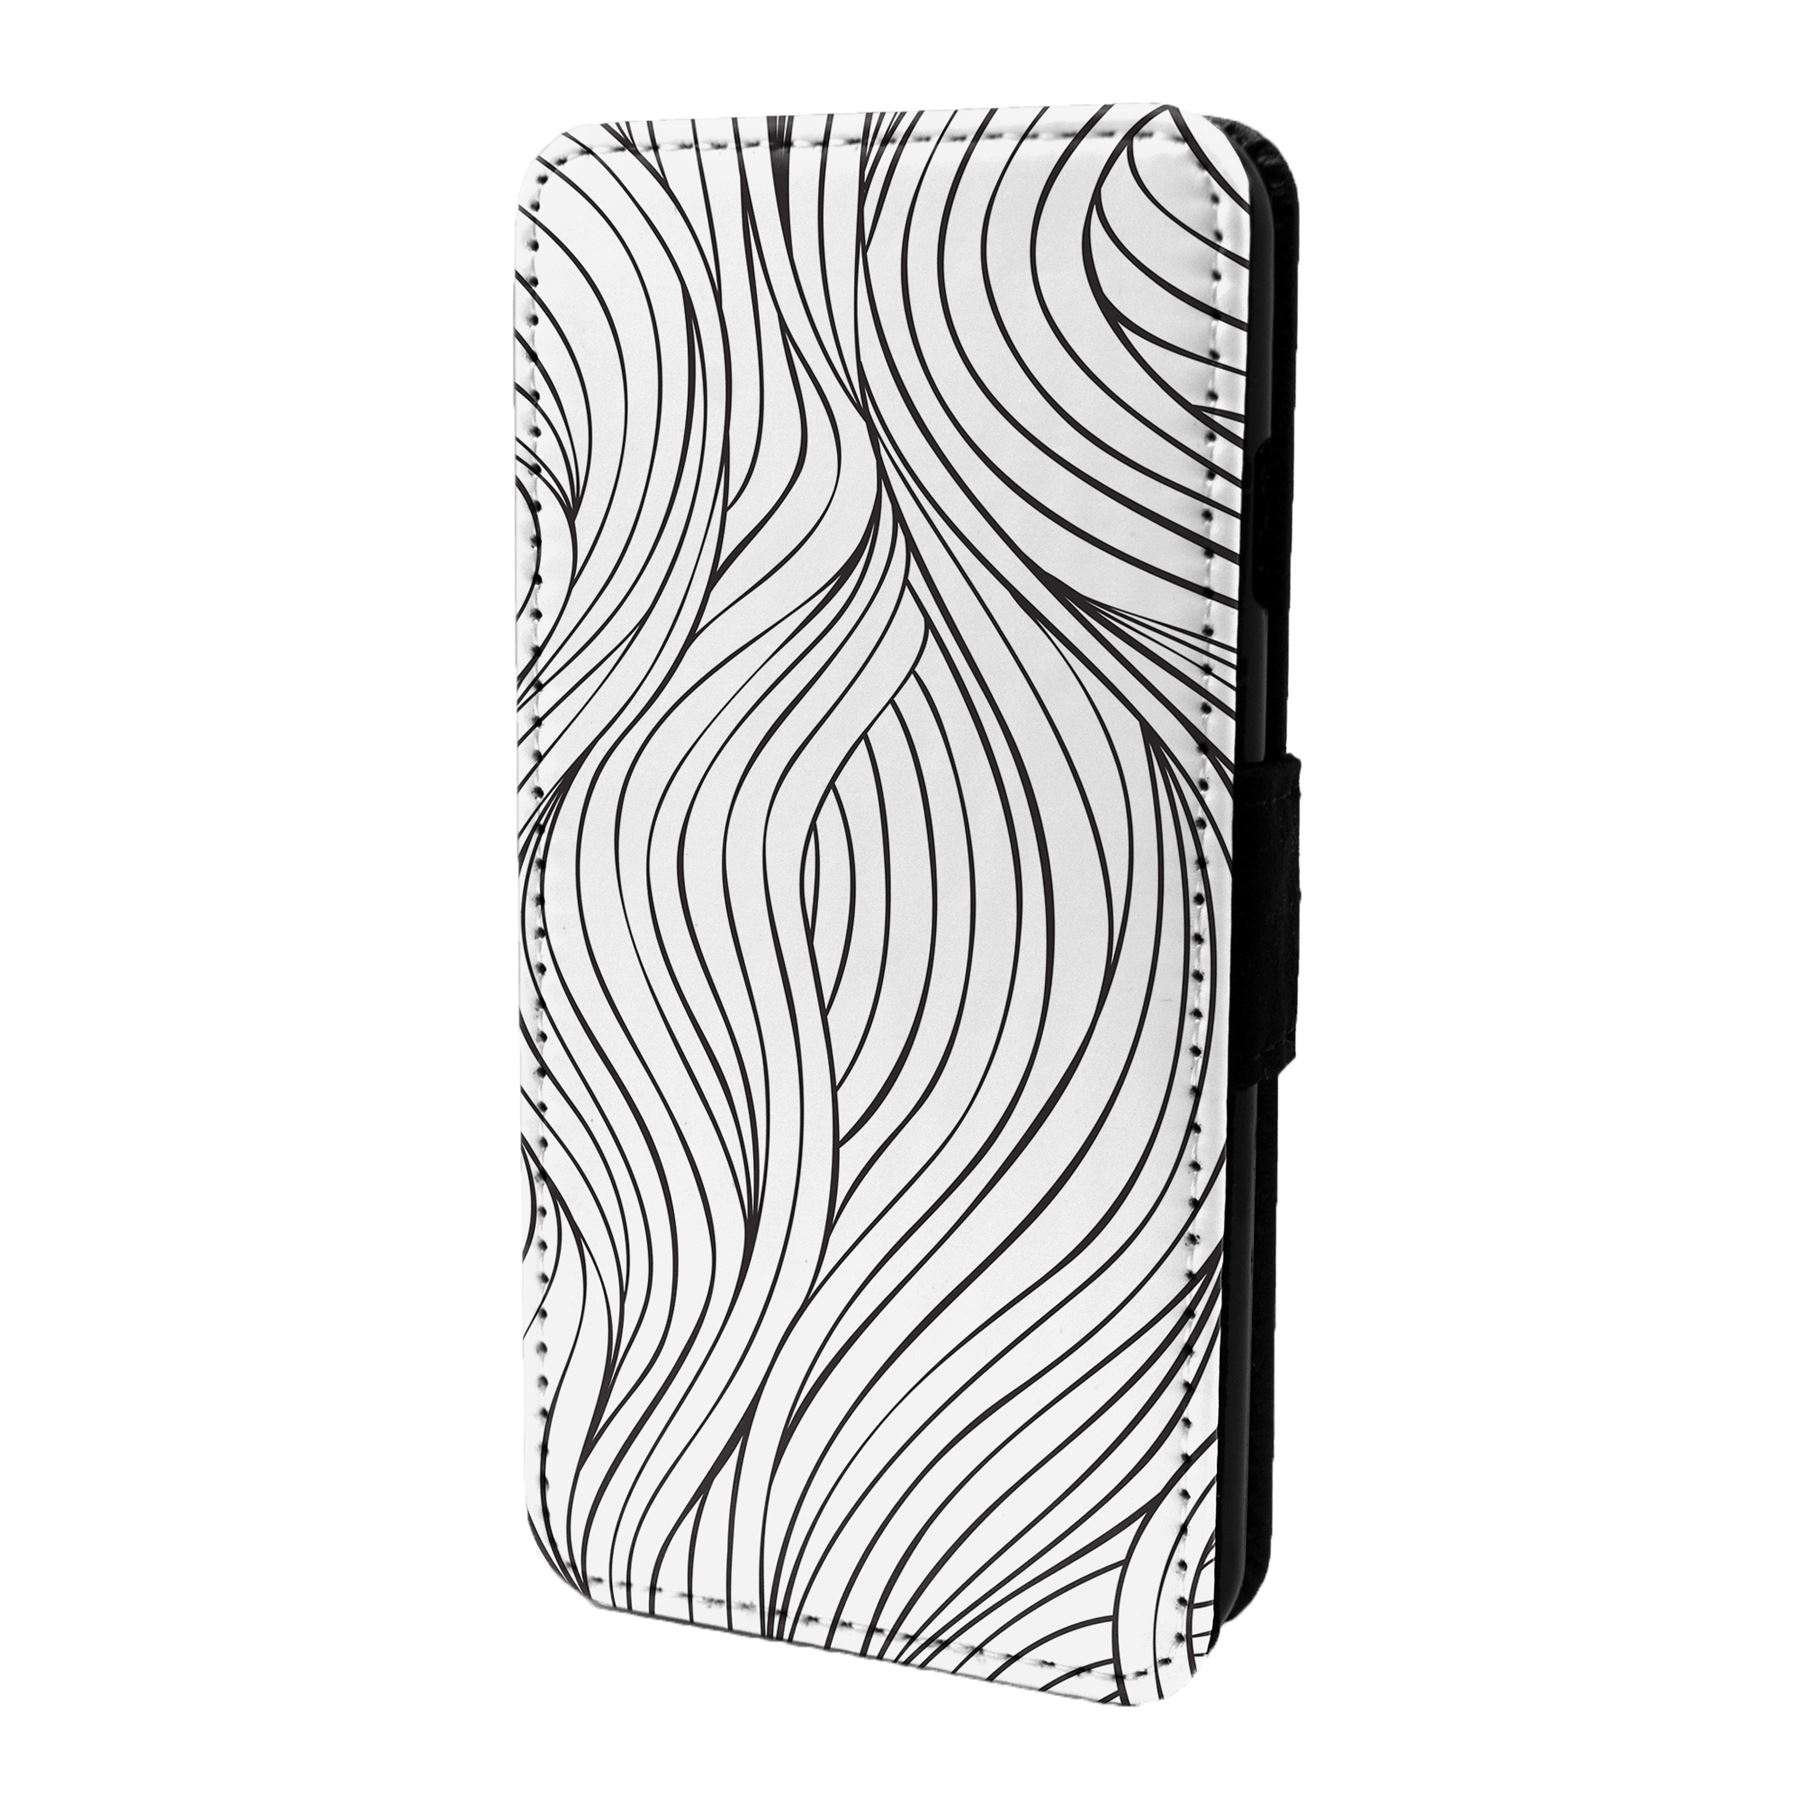 Abstracto-Minimal-Estampado-Funda-Libro-para-Telefono-Movil-S6576